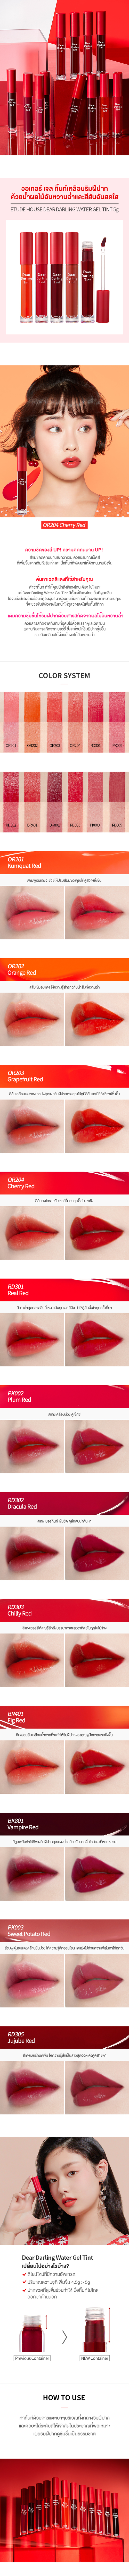 TH_Dear Daling Water Gel Tint(model replacement)